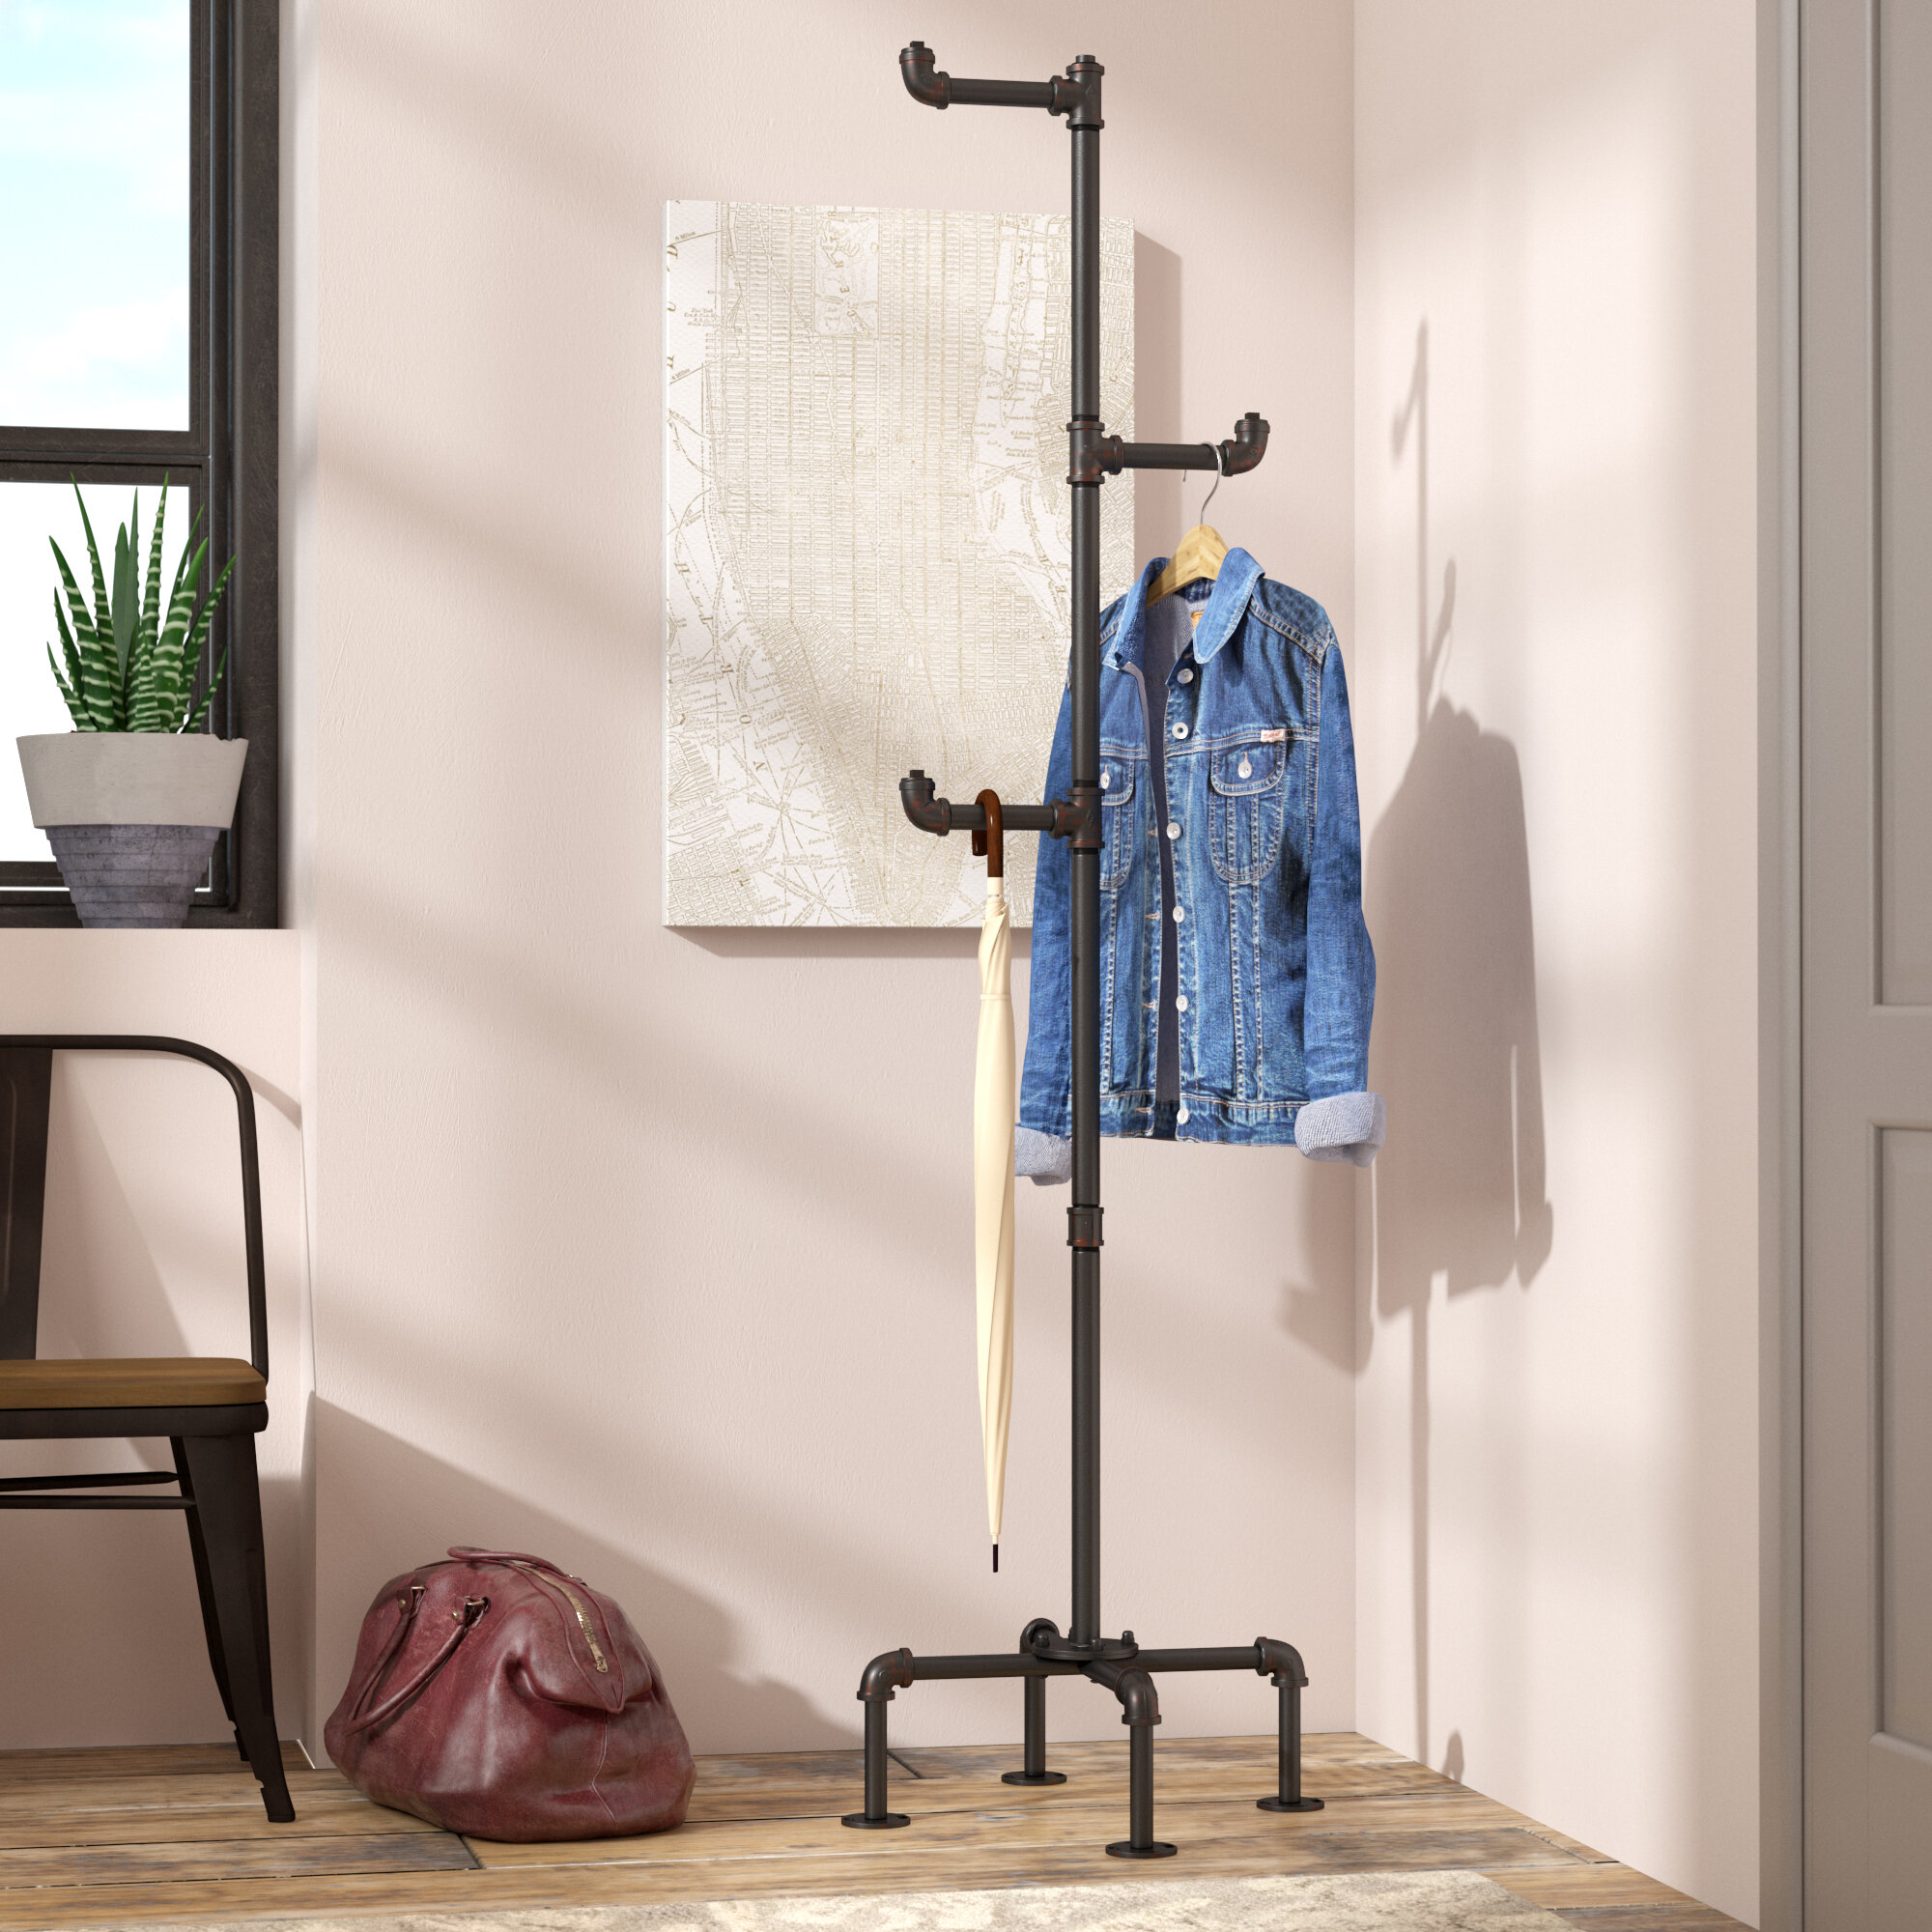 hanger midland cloth limitedrak photo rolling llc mobile clothesail clothing racks incredible corner rack industrial of txak stand industries limitedock rock foldingack size castle full inspirations